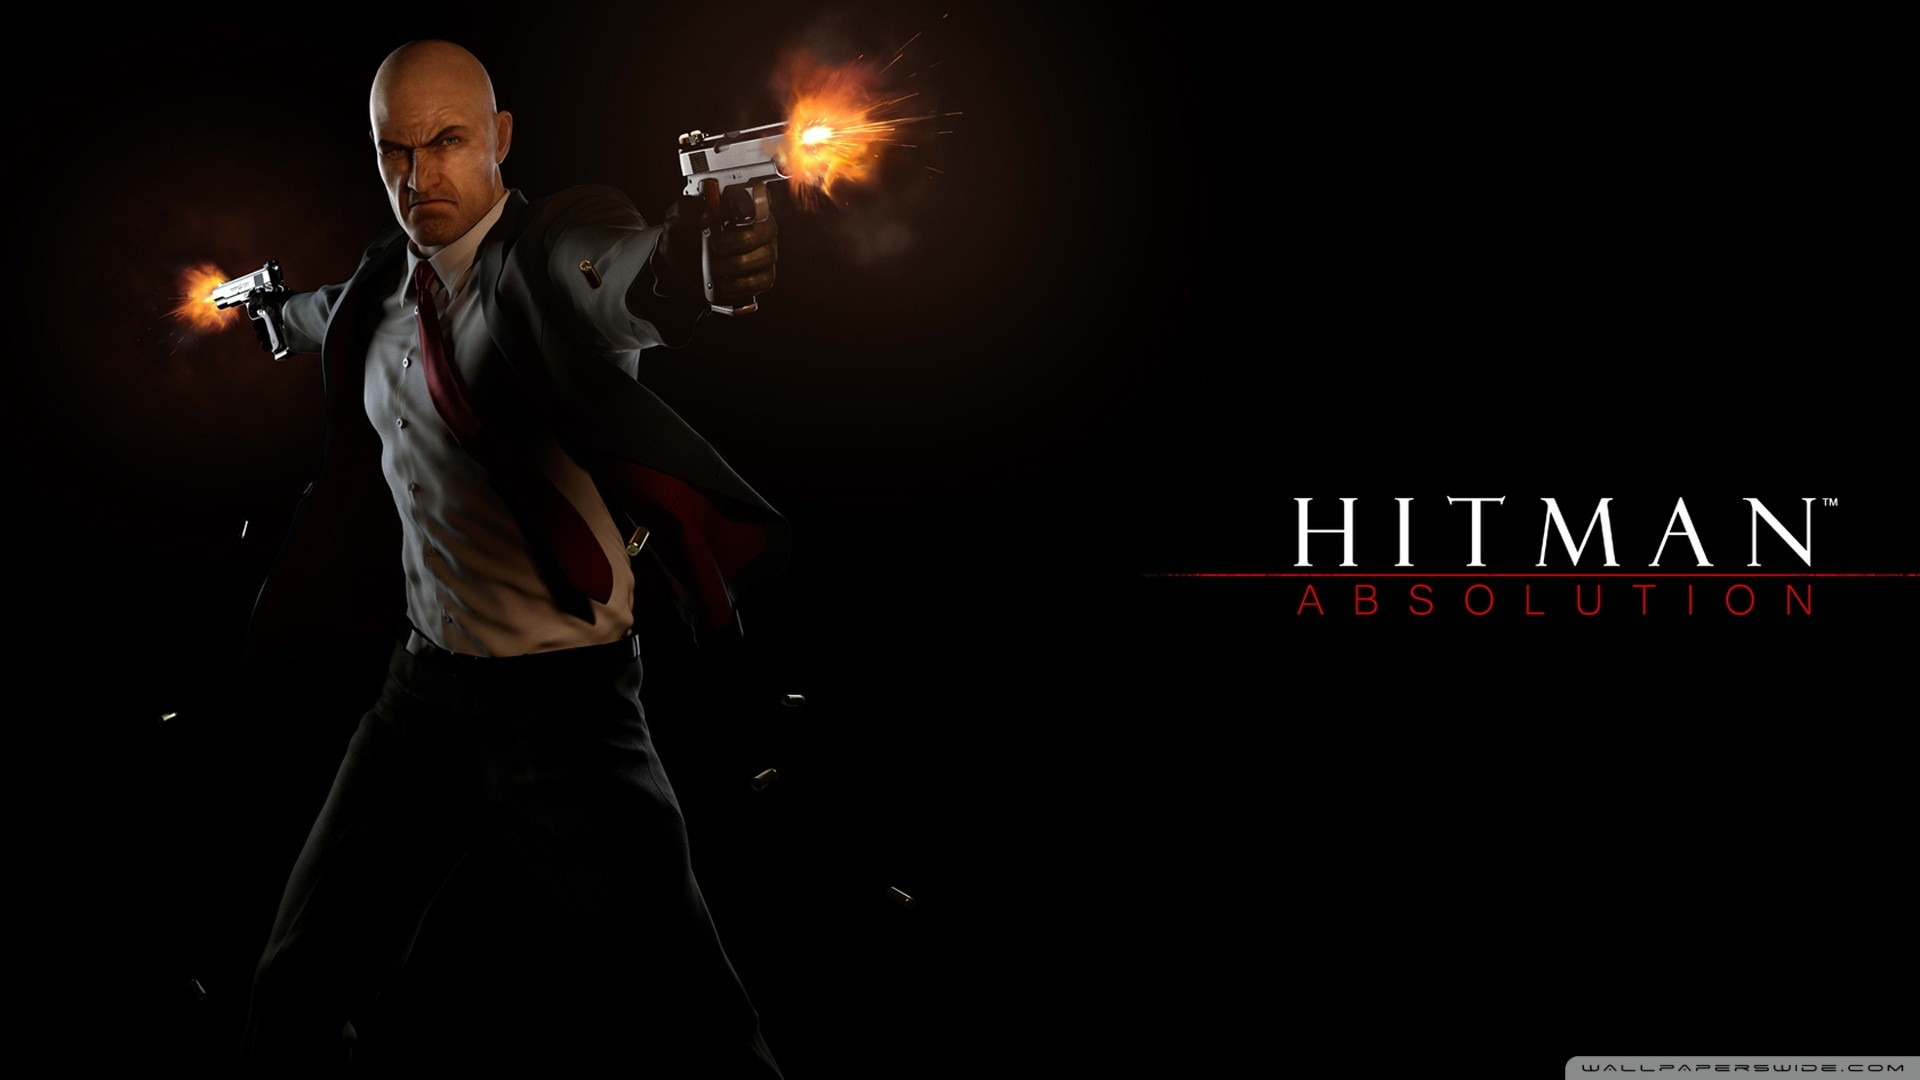 1920x1080 Hitman Absolution Duel Silverballers Wallpapers HD / Desktop and Mobile Backgrounds